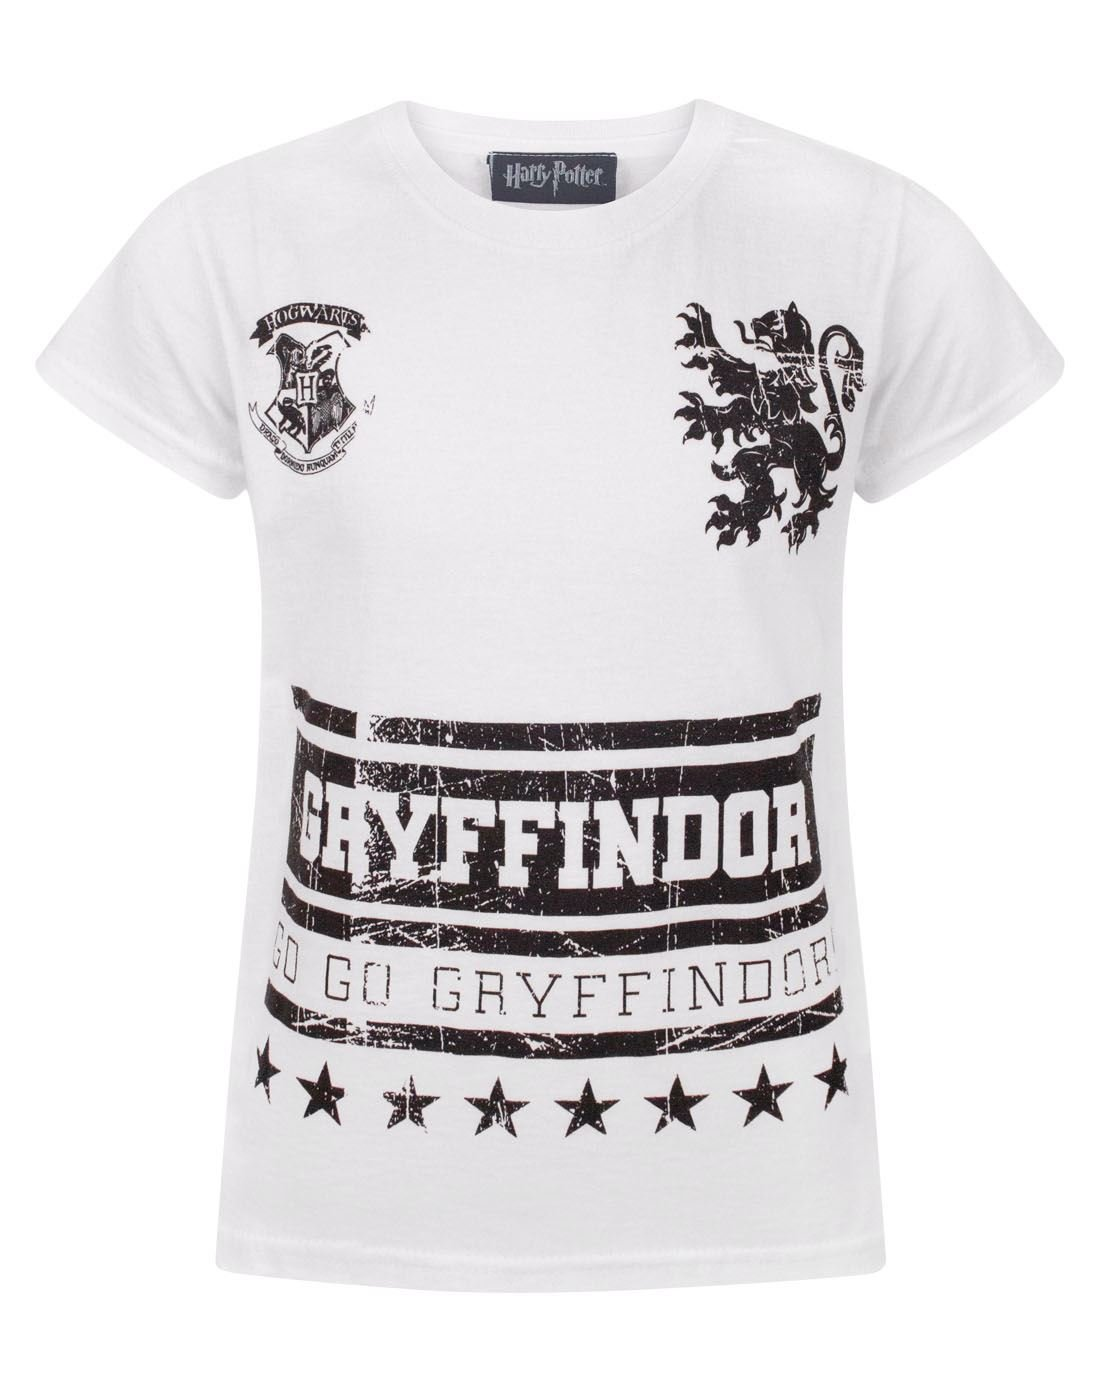 Harry Potter Go Gryffindor Girl's T-Shirt Fashion UK